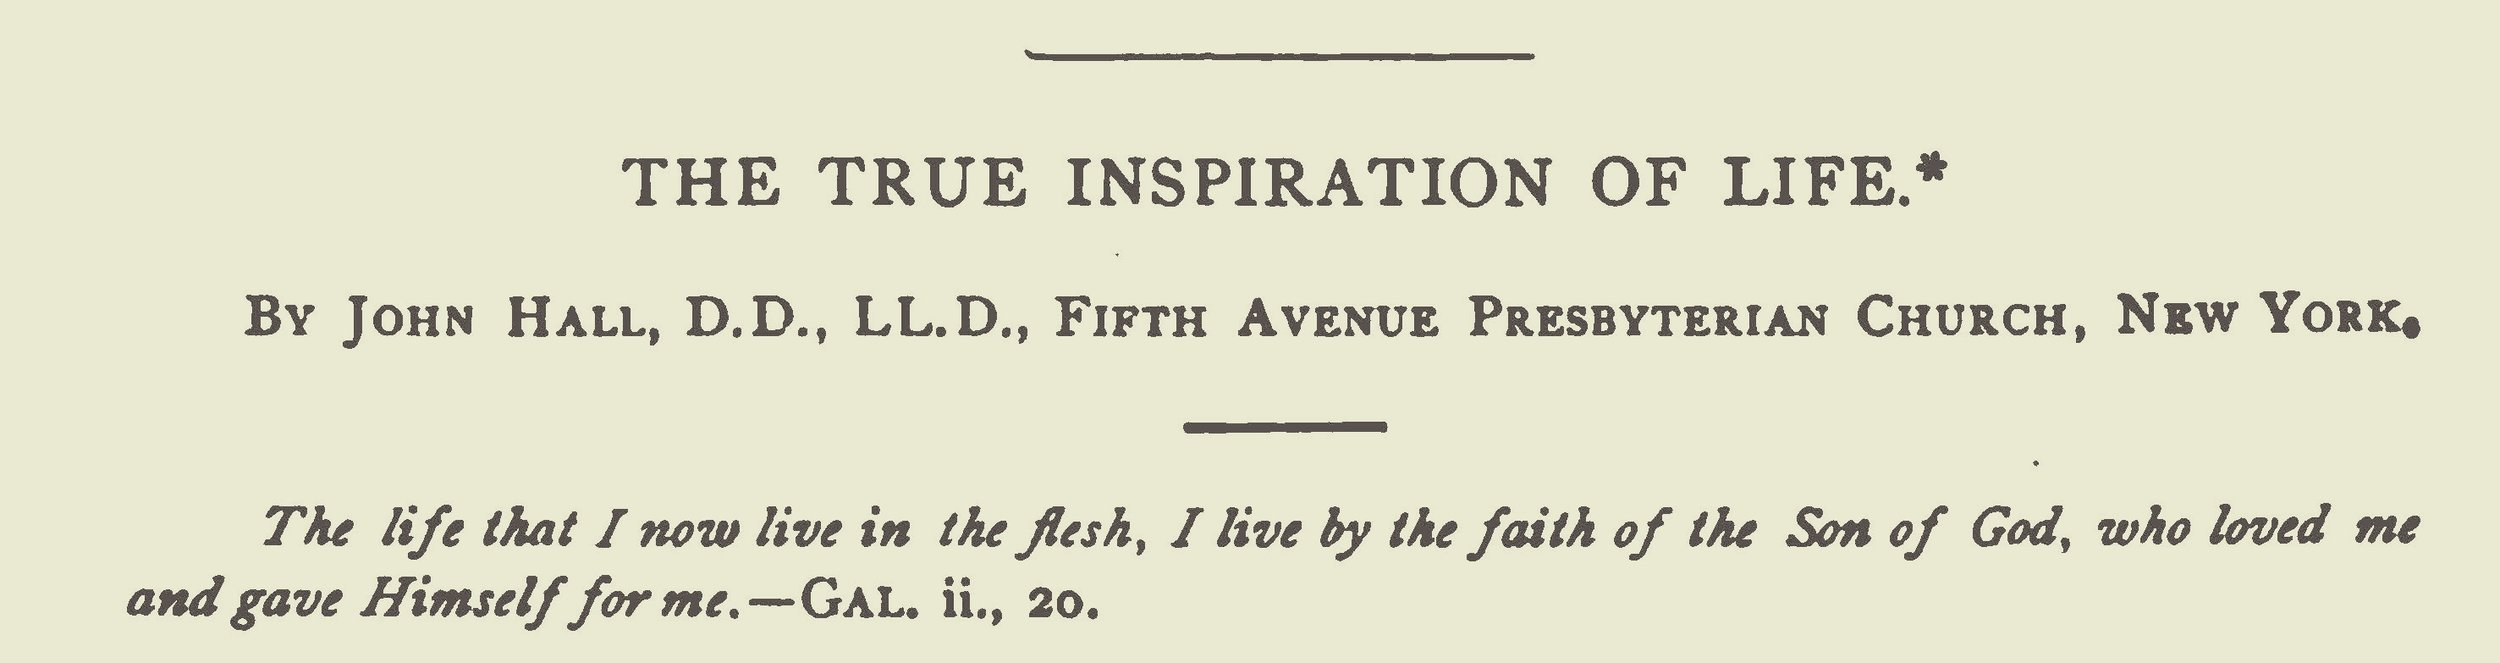 Hall, John, The True Inspiration of Life Title Page.jpg